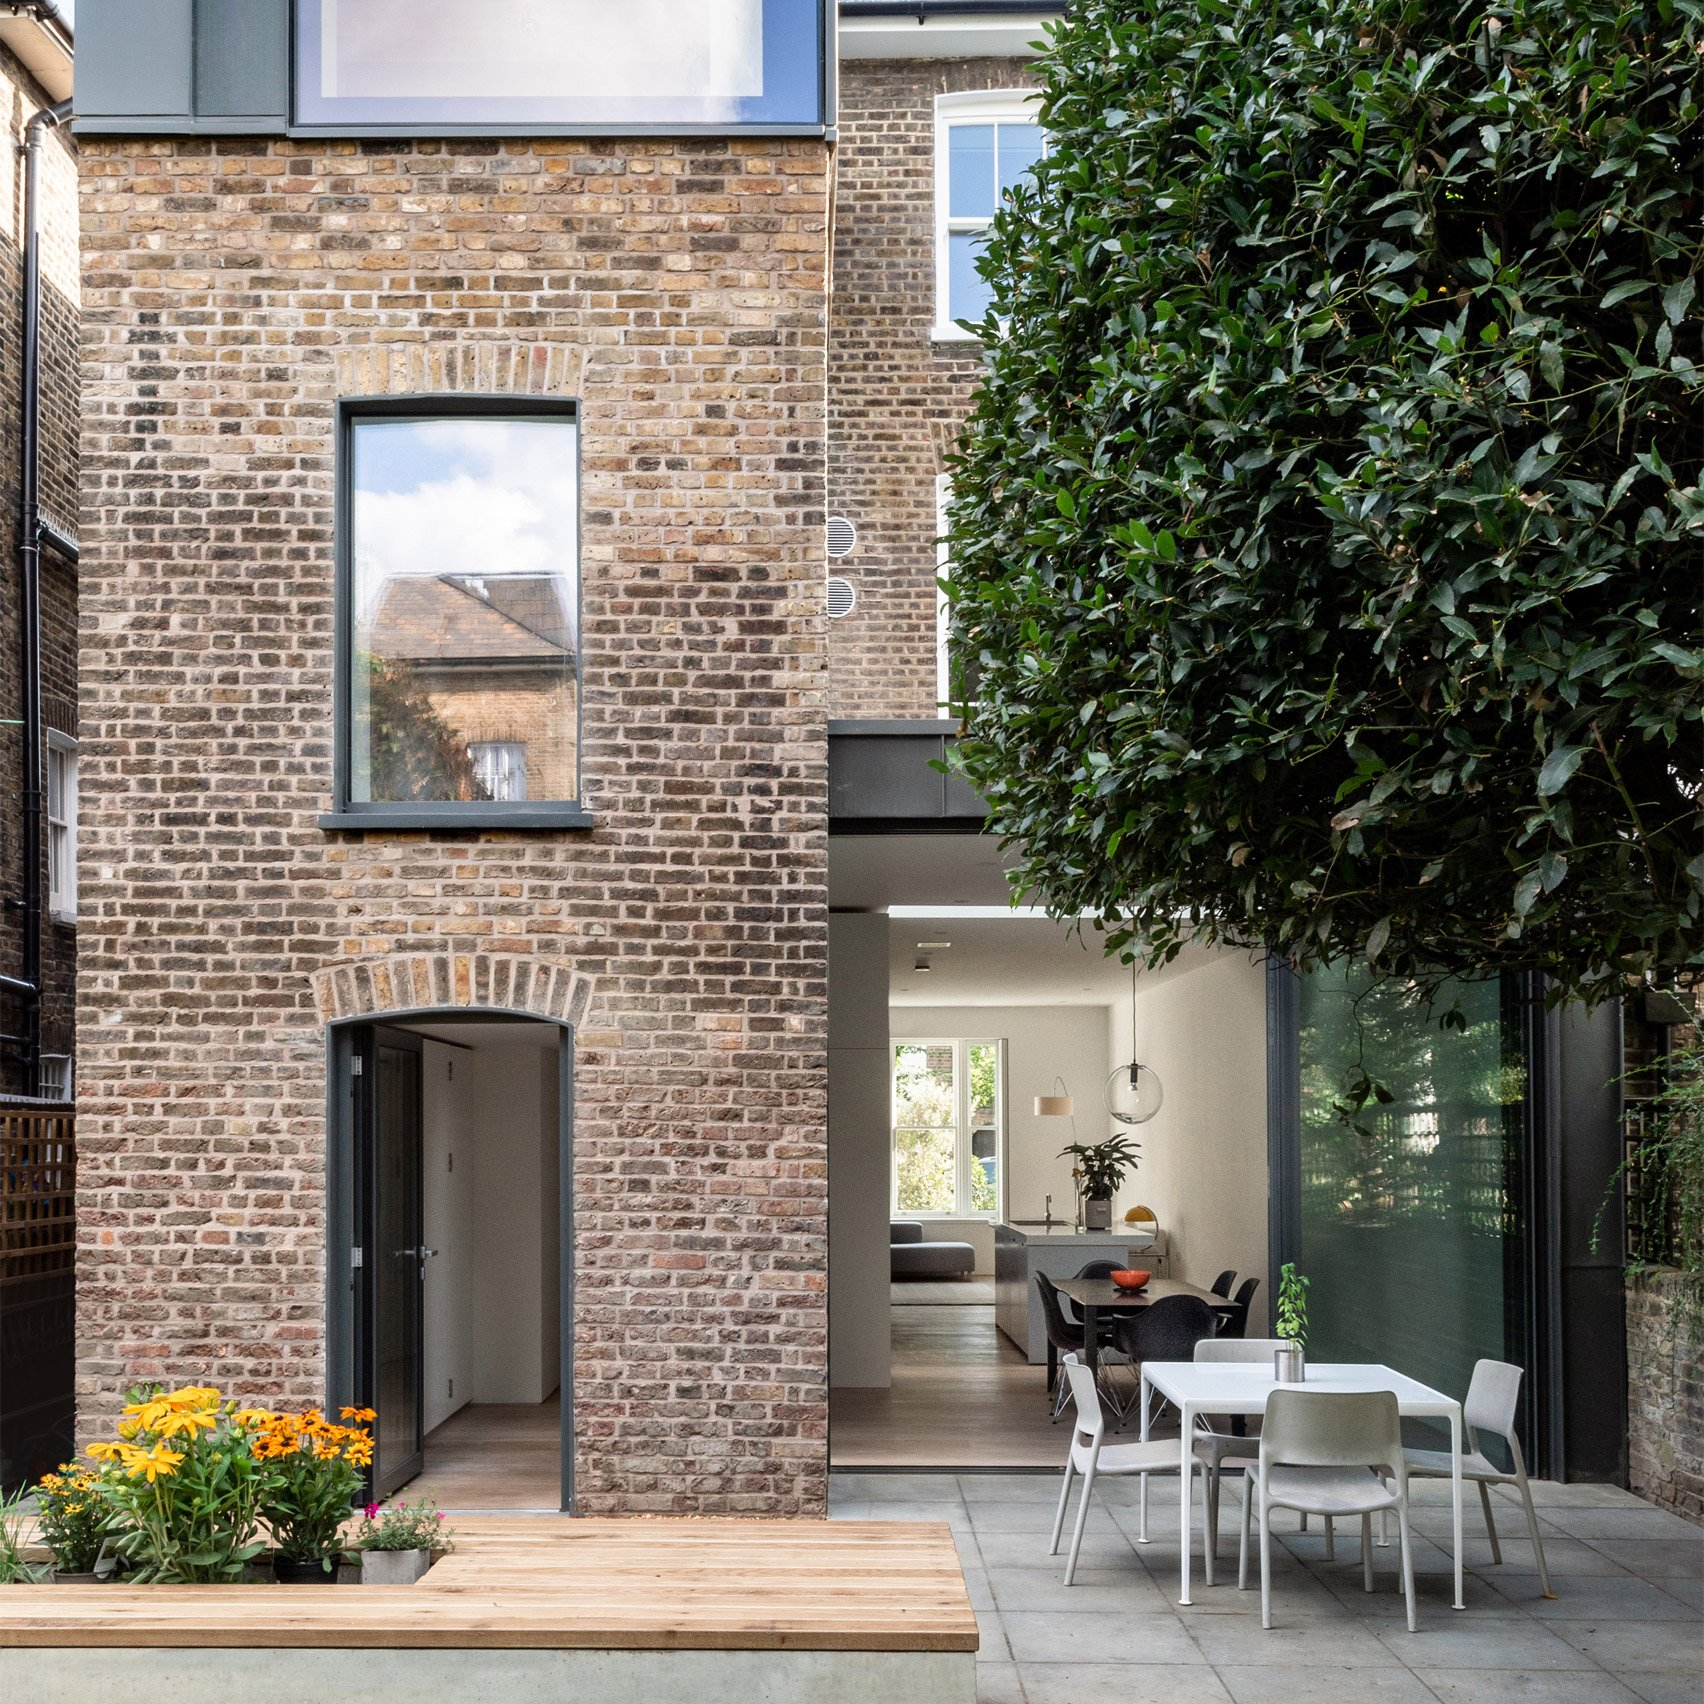 Lawford Road, Camden, by OEB Architects